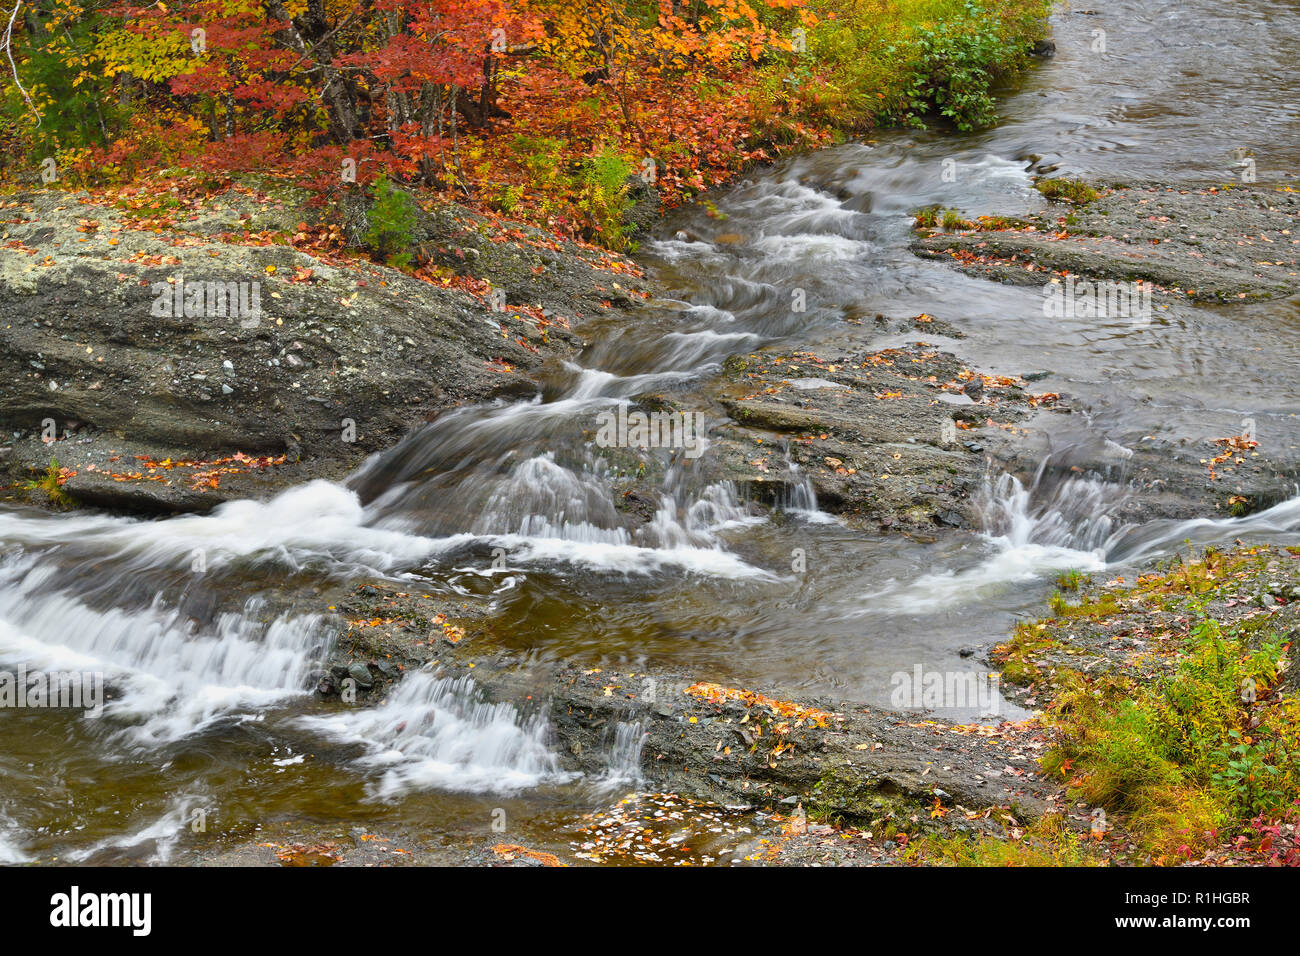 A babbling brook with colorful leaves adorning it's banks at Waterford near Sussex New Brunswick Canada. - Stock Image